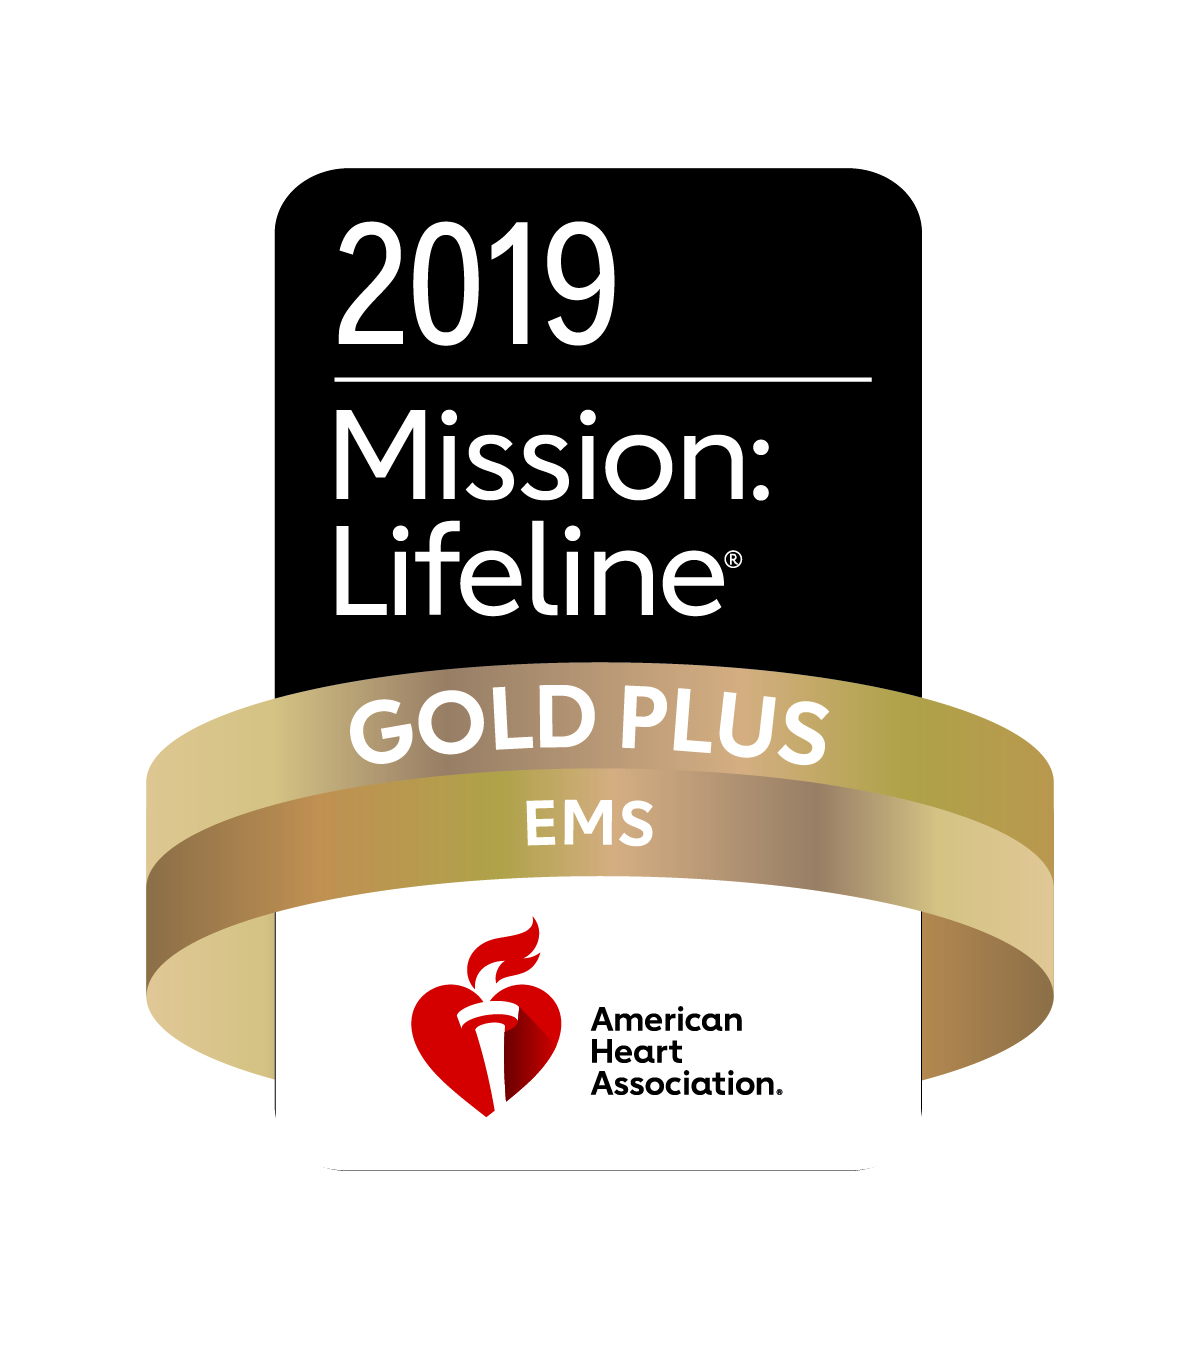 Mission Lifeline 2019 PLUS GoldPlus 4C